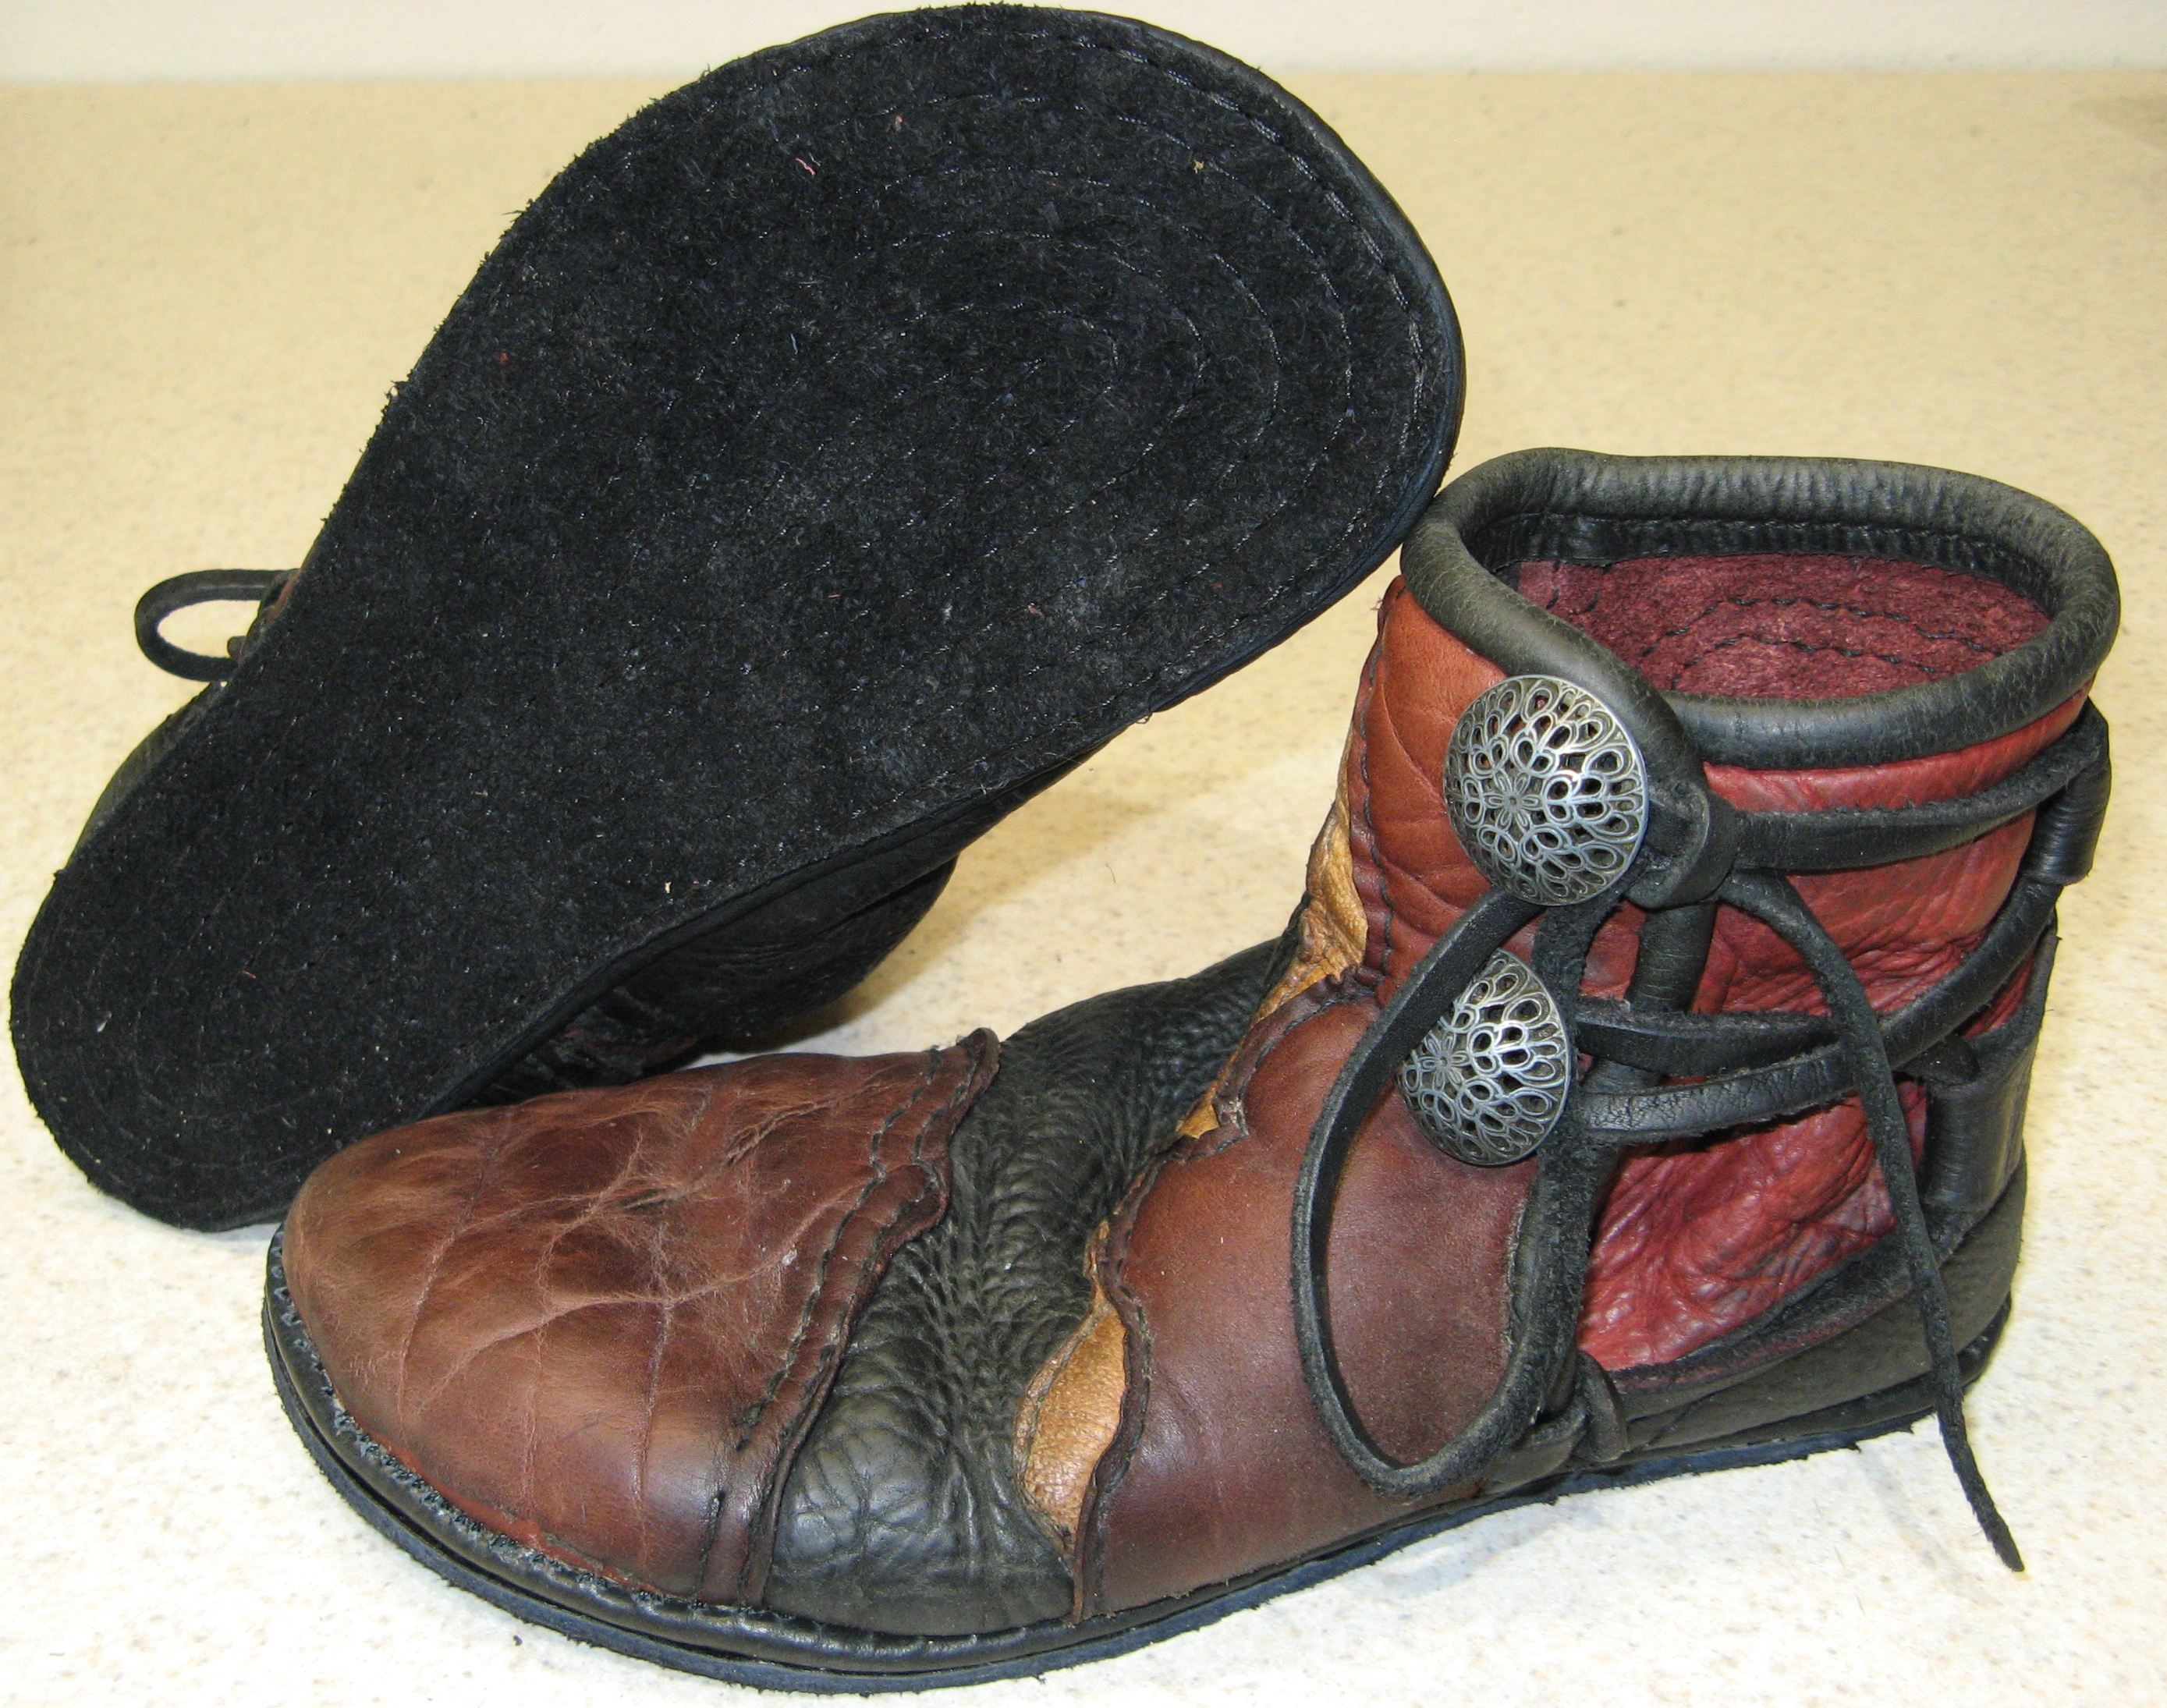 repaired leather moccasins soles